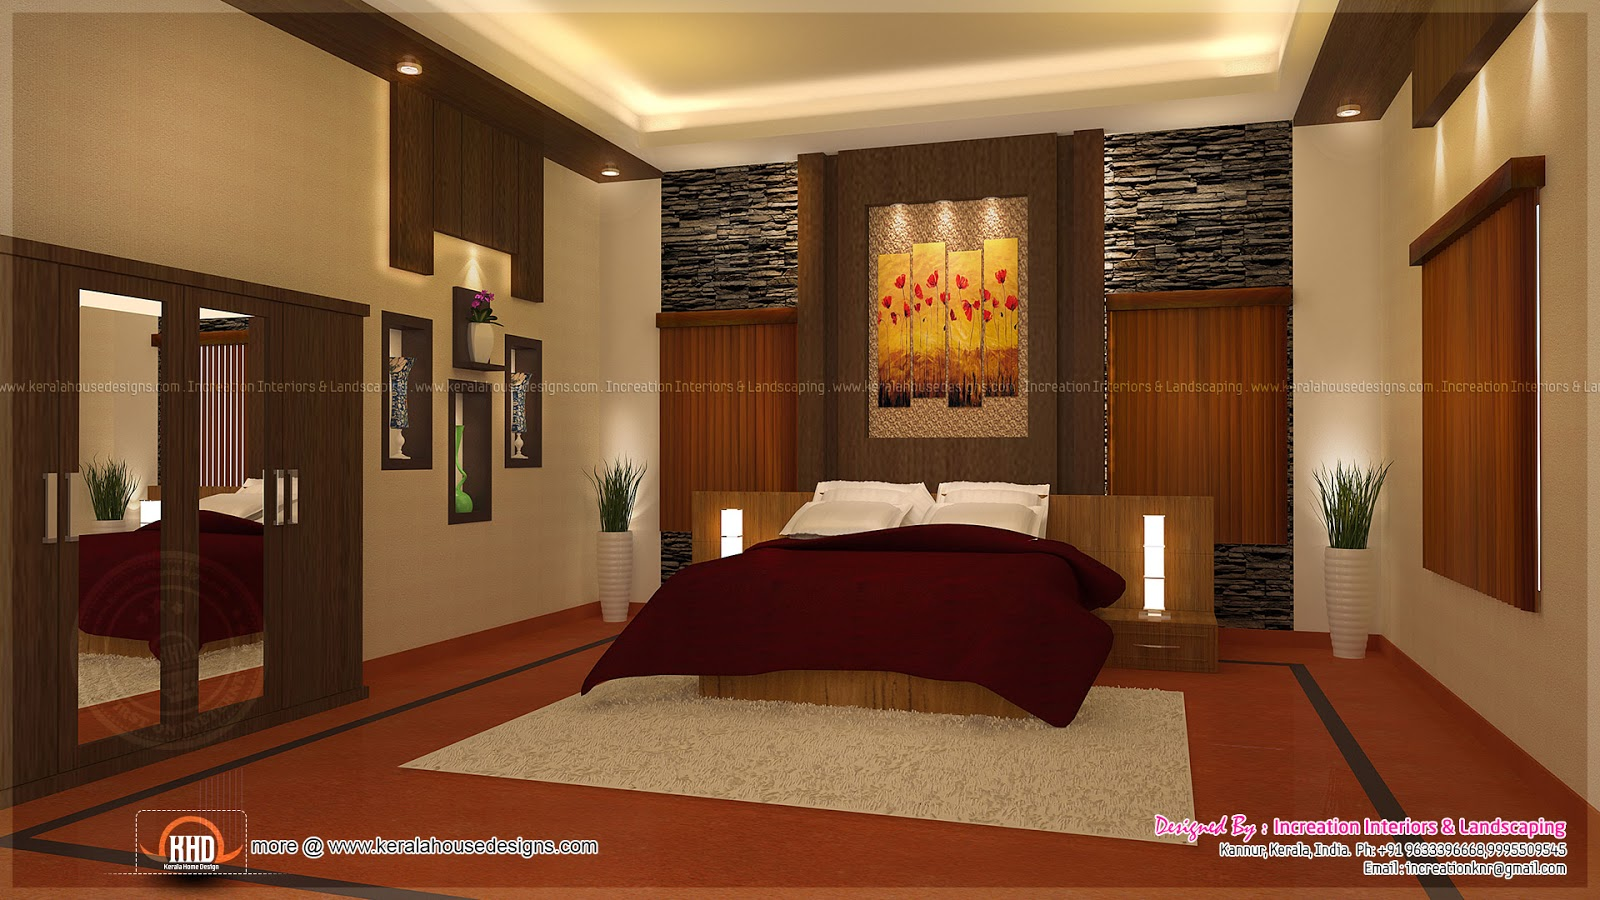 House interior ideas in 3d rendering home kerala plans House model interior design